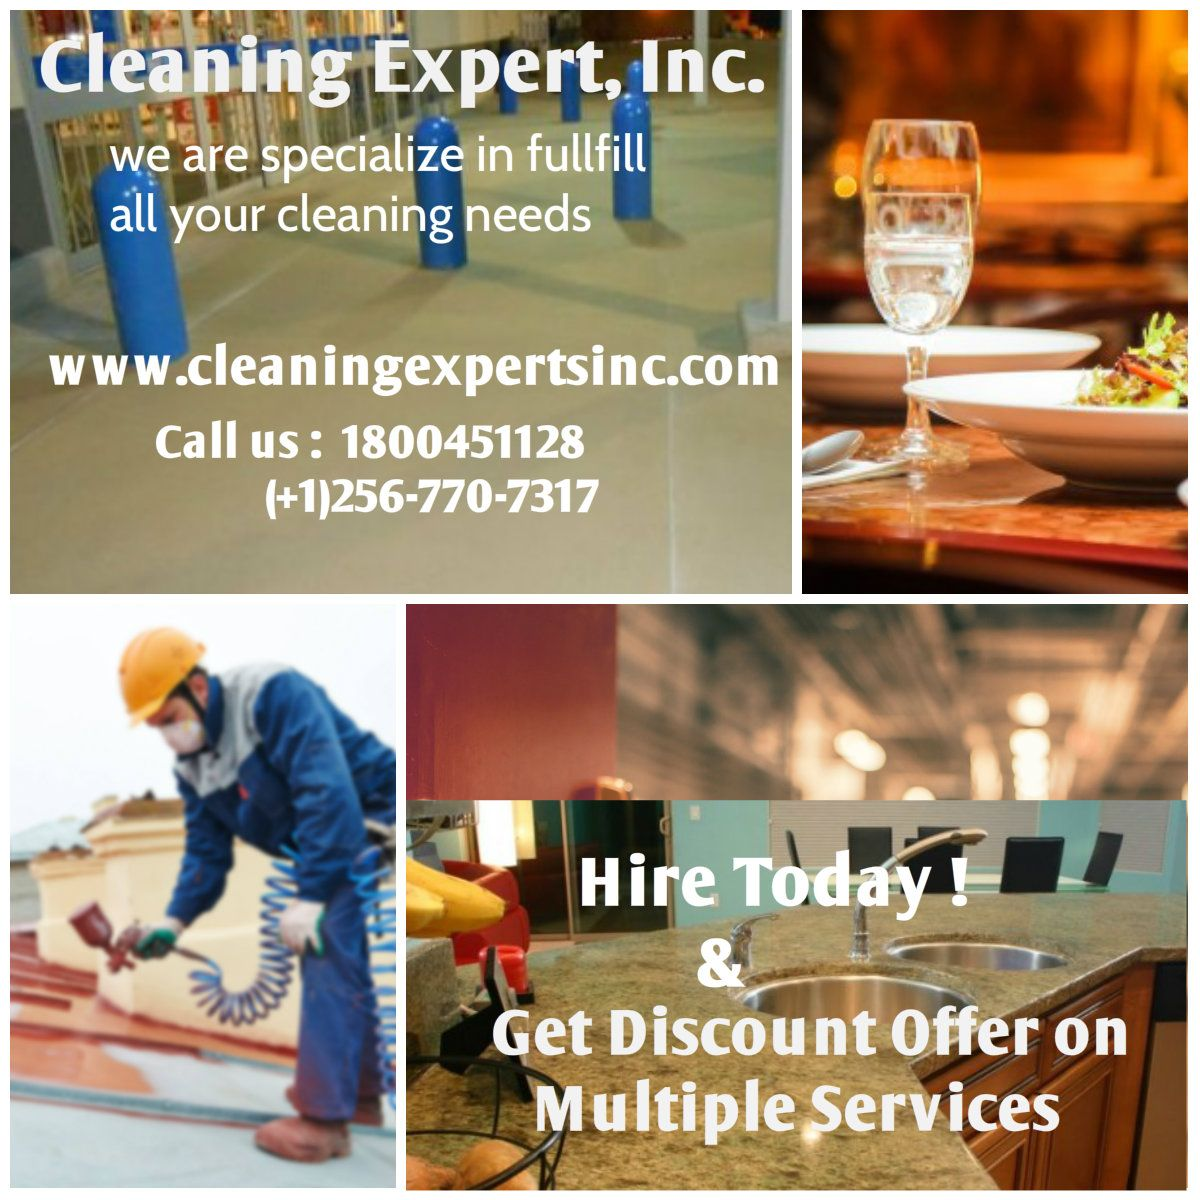 Now Cleaning Experts, Inc. offers best apartment cleaning services ...